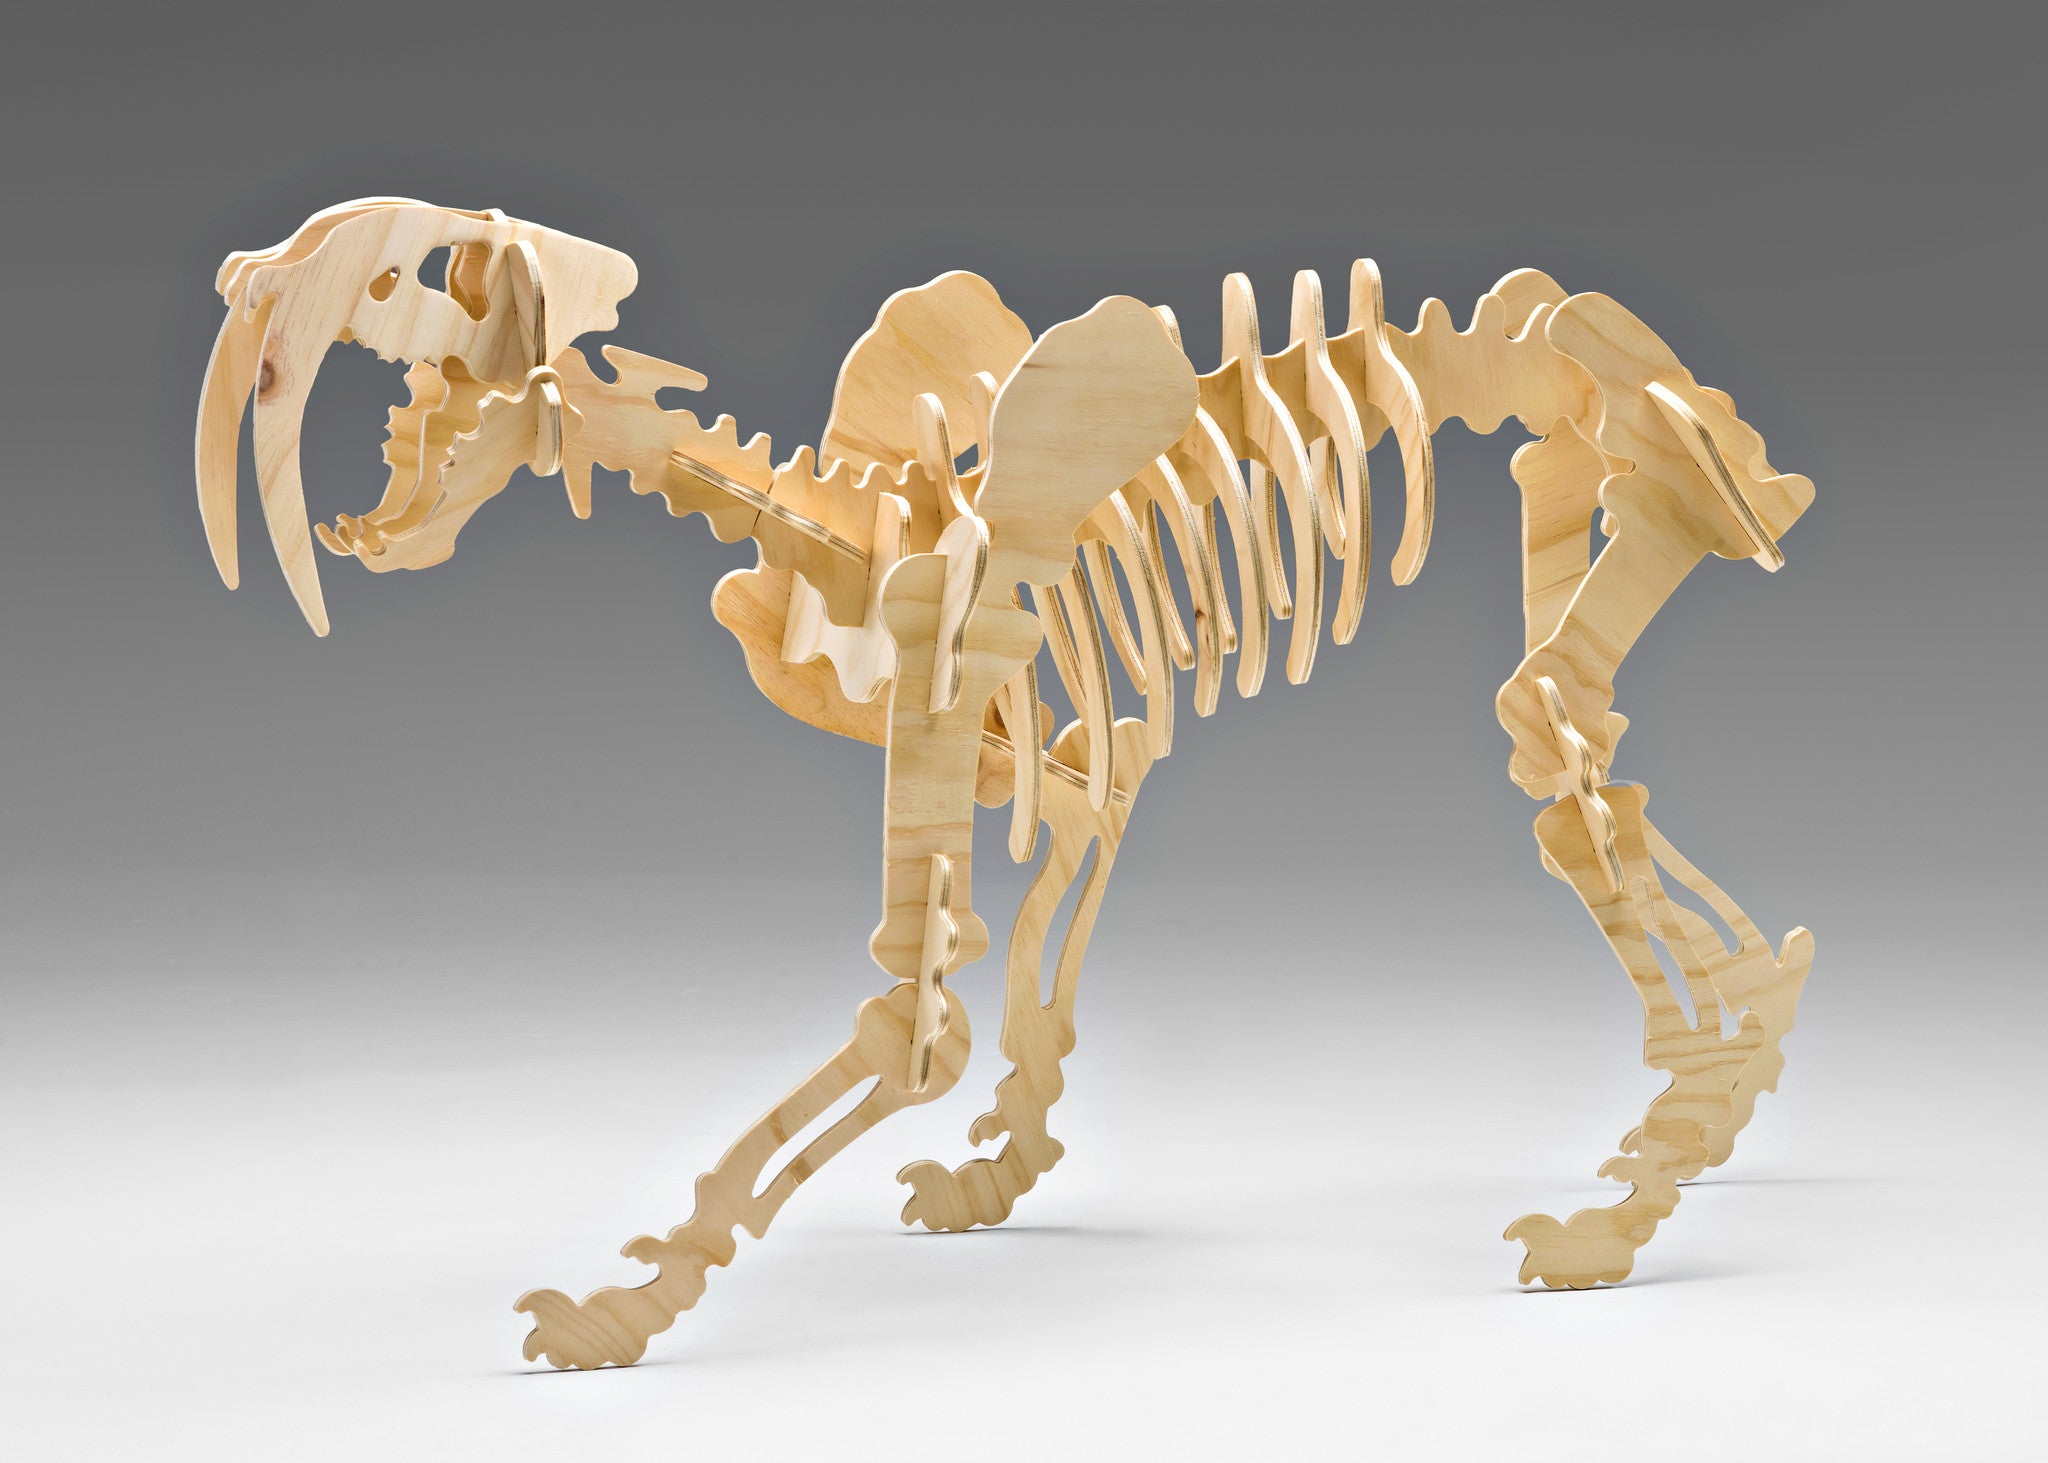 Saber Tooth Tiger 3D Wooden Puzzle